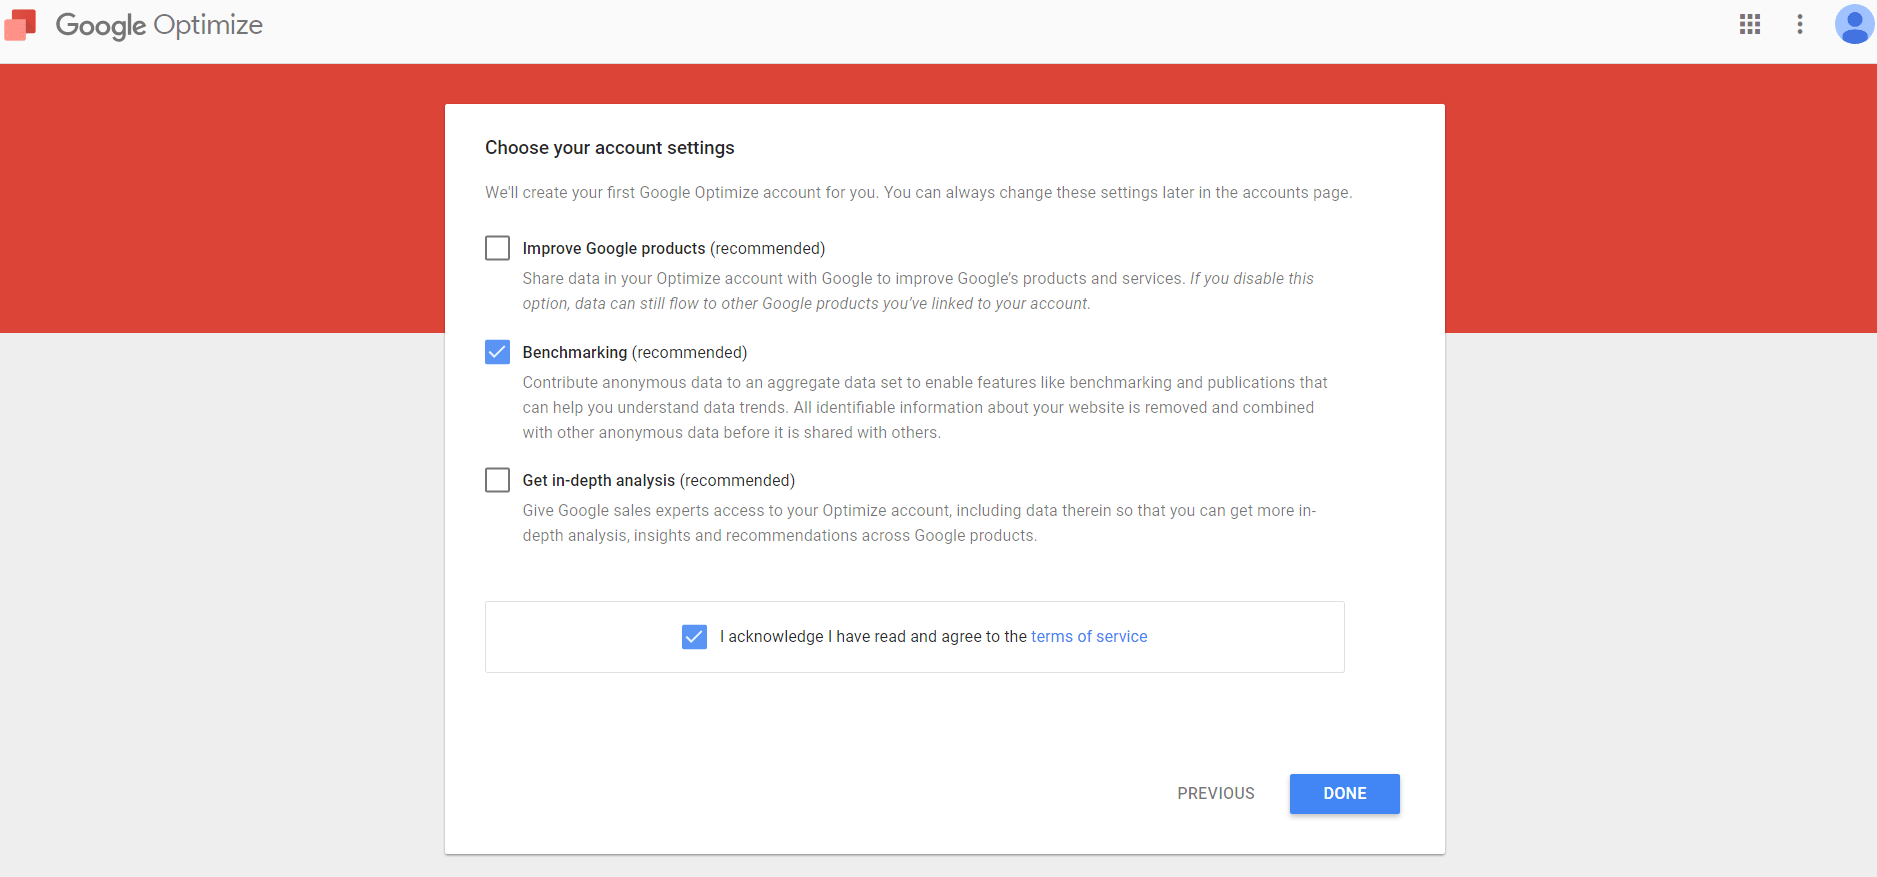 Bild: Google Optimize Account Setup - Account Einstellungen